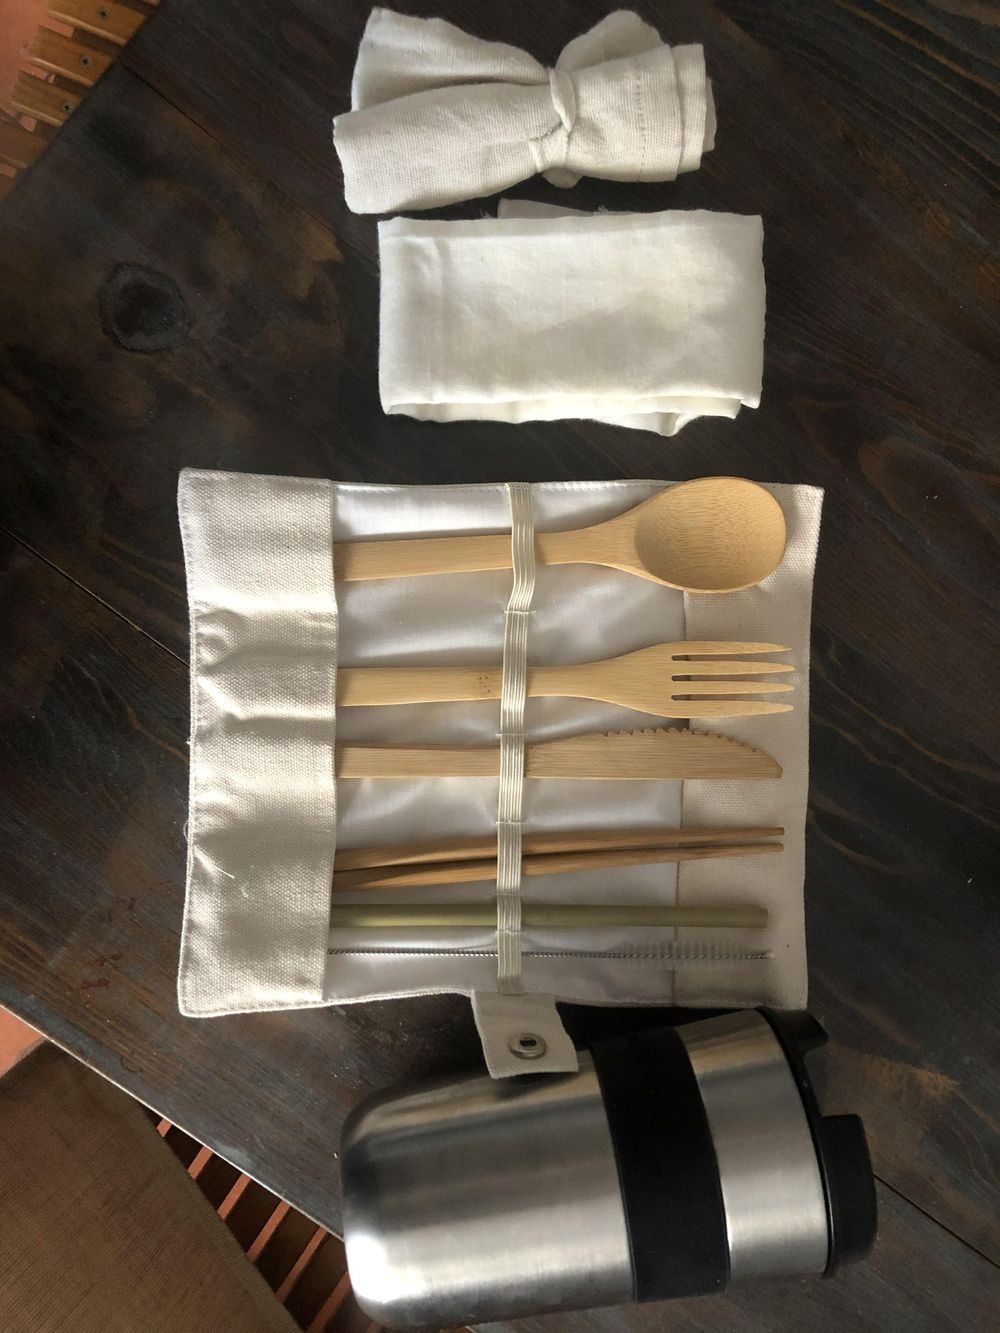 Less Waste Supplies - image 2 - student project